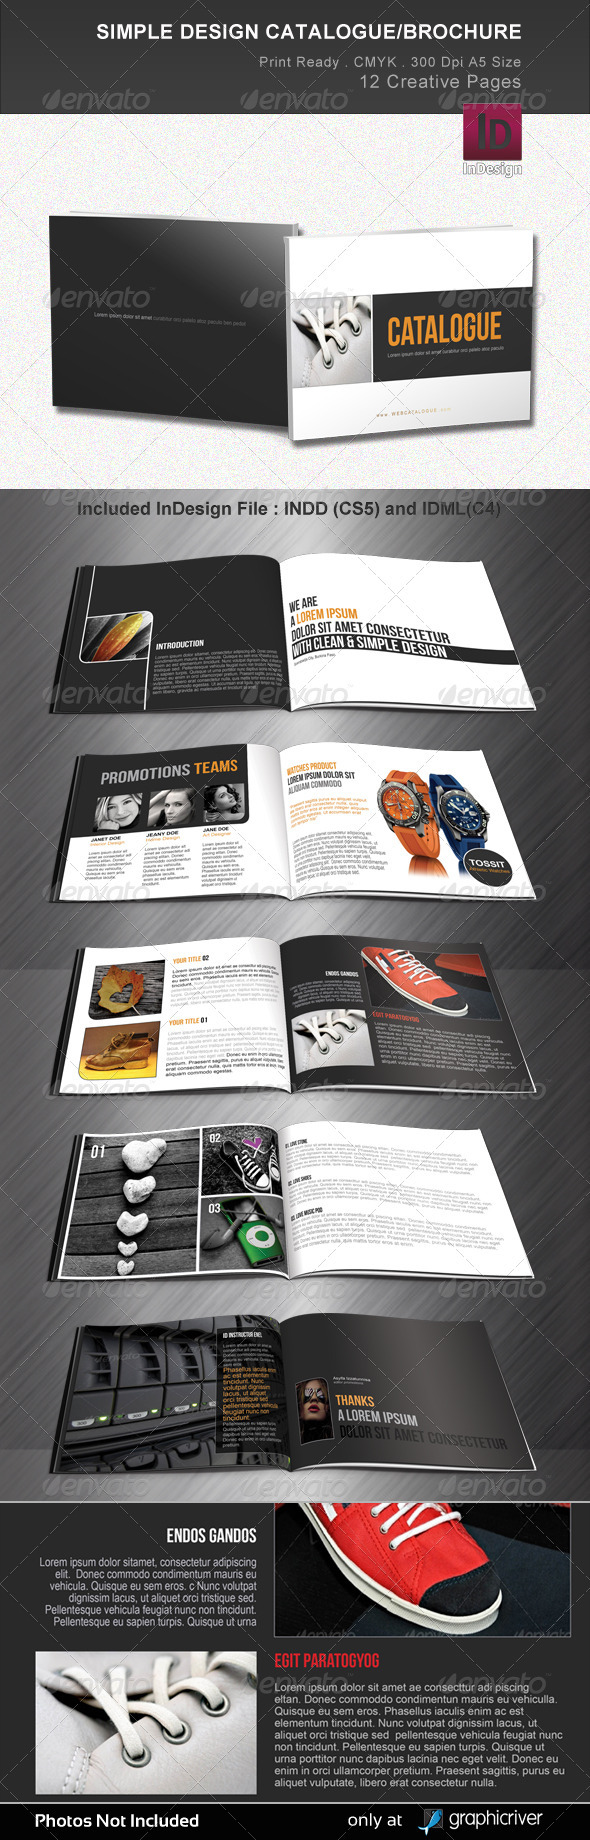 Simple Design Catalogue/Brochure - Brochures Print Templates